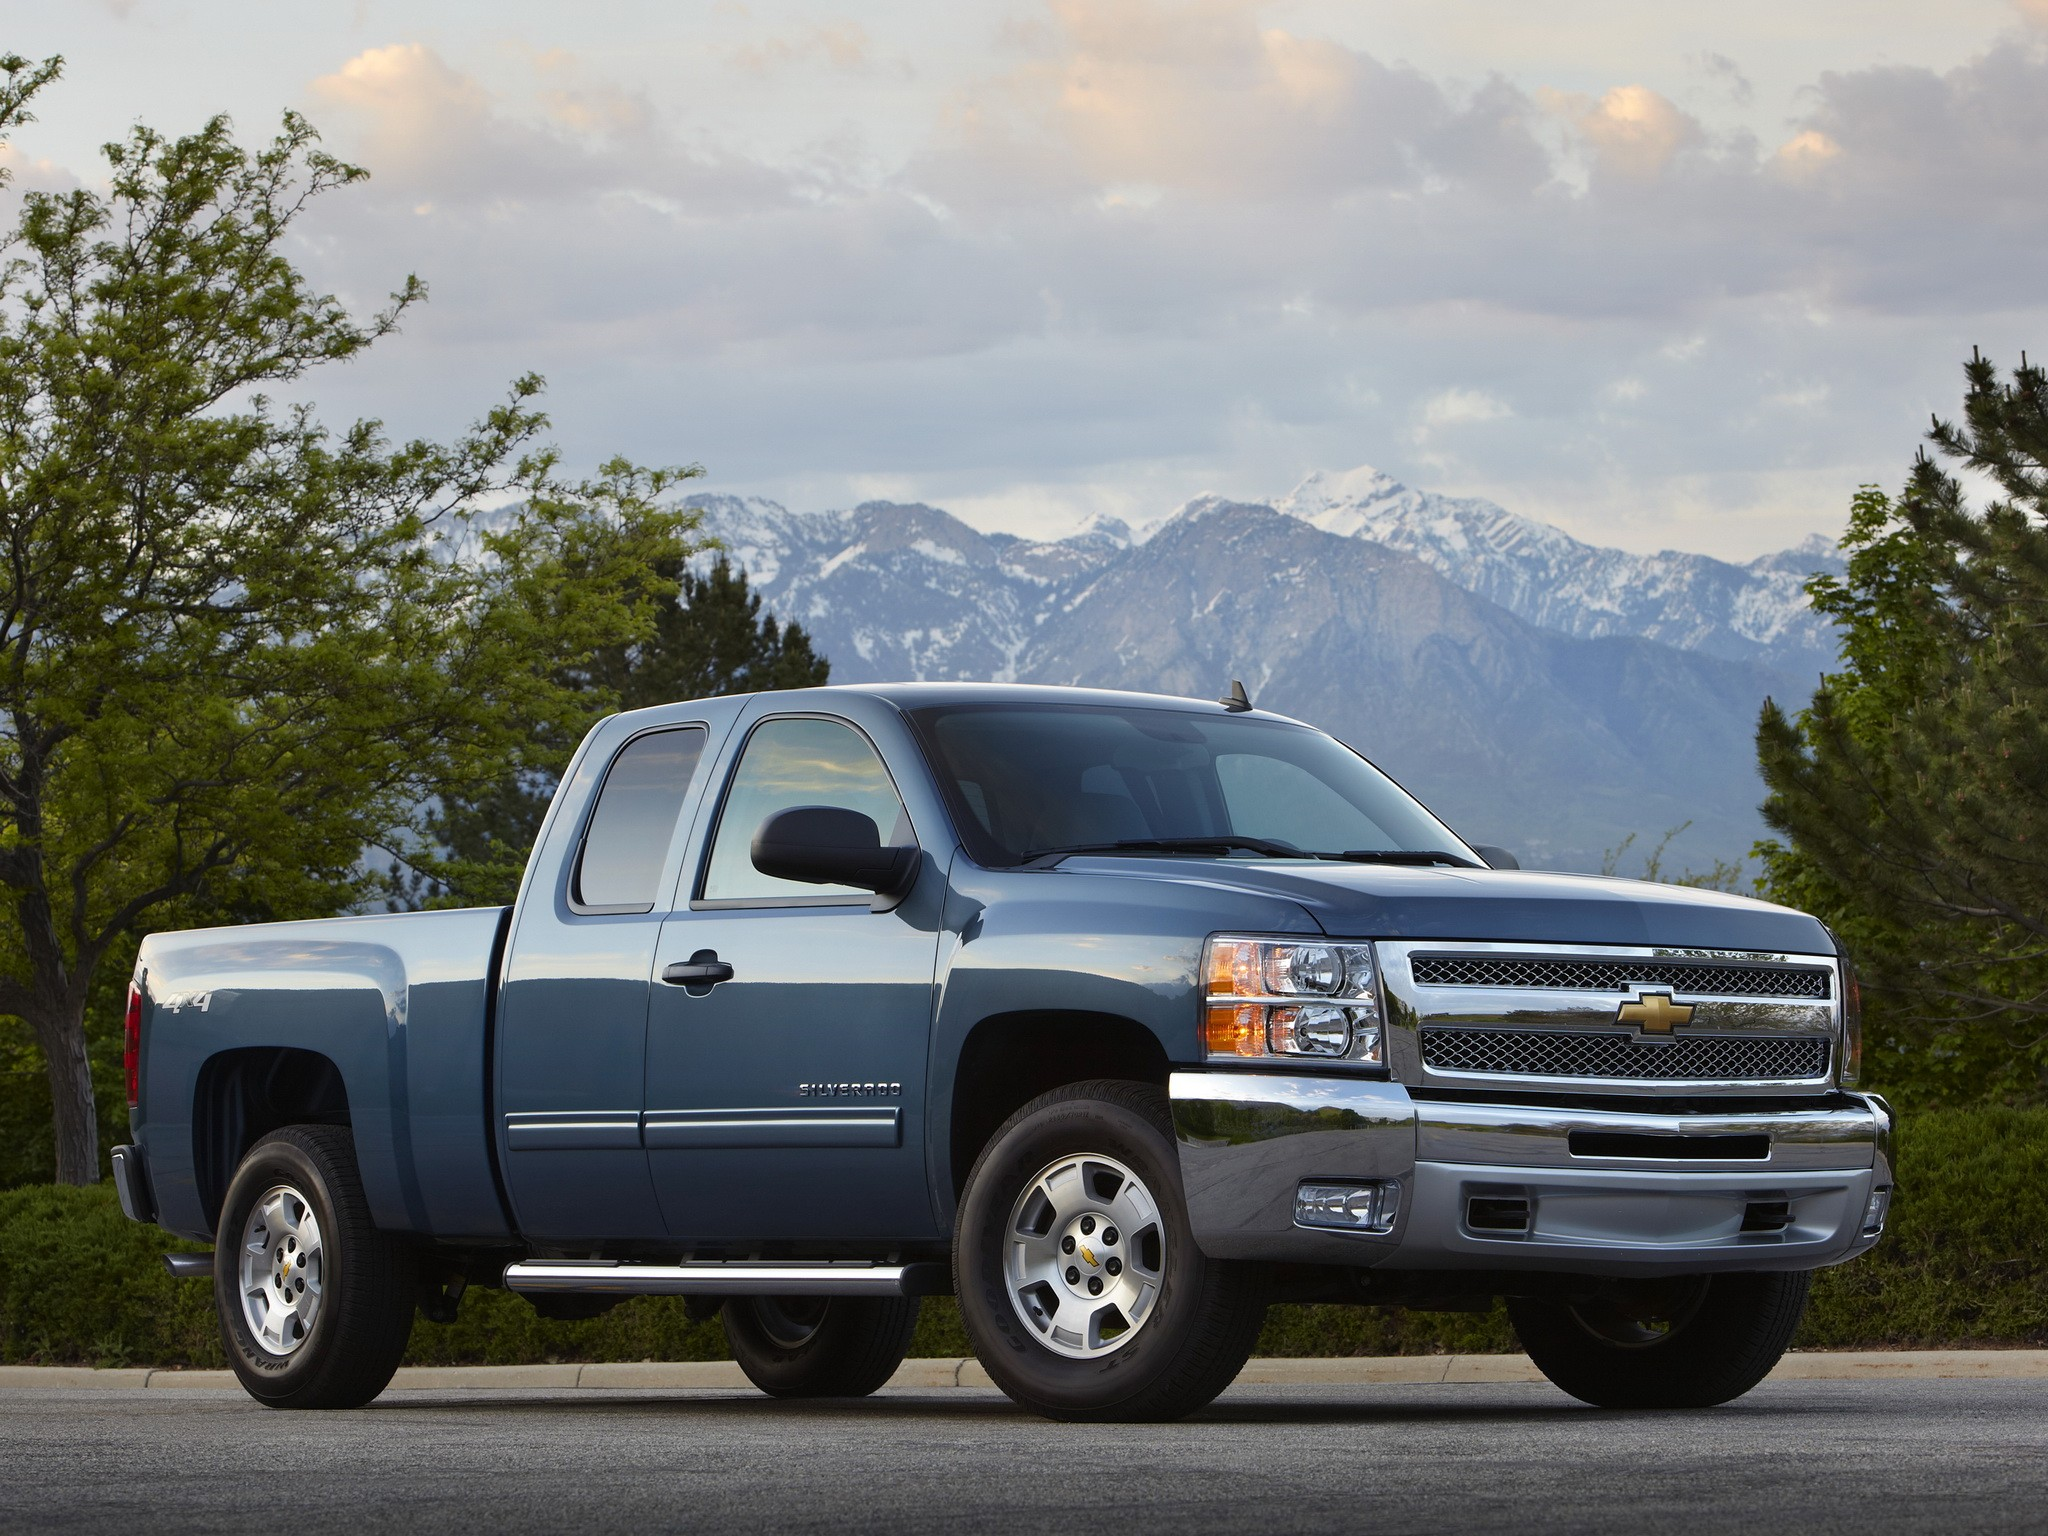 chevrolet silverado 1500 extended cab specs photos 2008 2009 2010 2011 2012 autoevolution. Black Bedroom Furniture Sets. Home Design Ideas